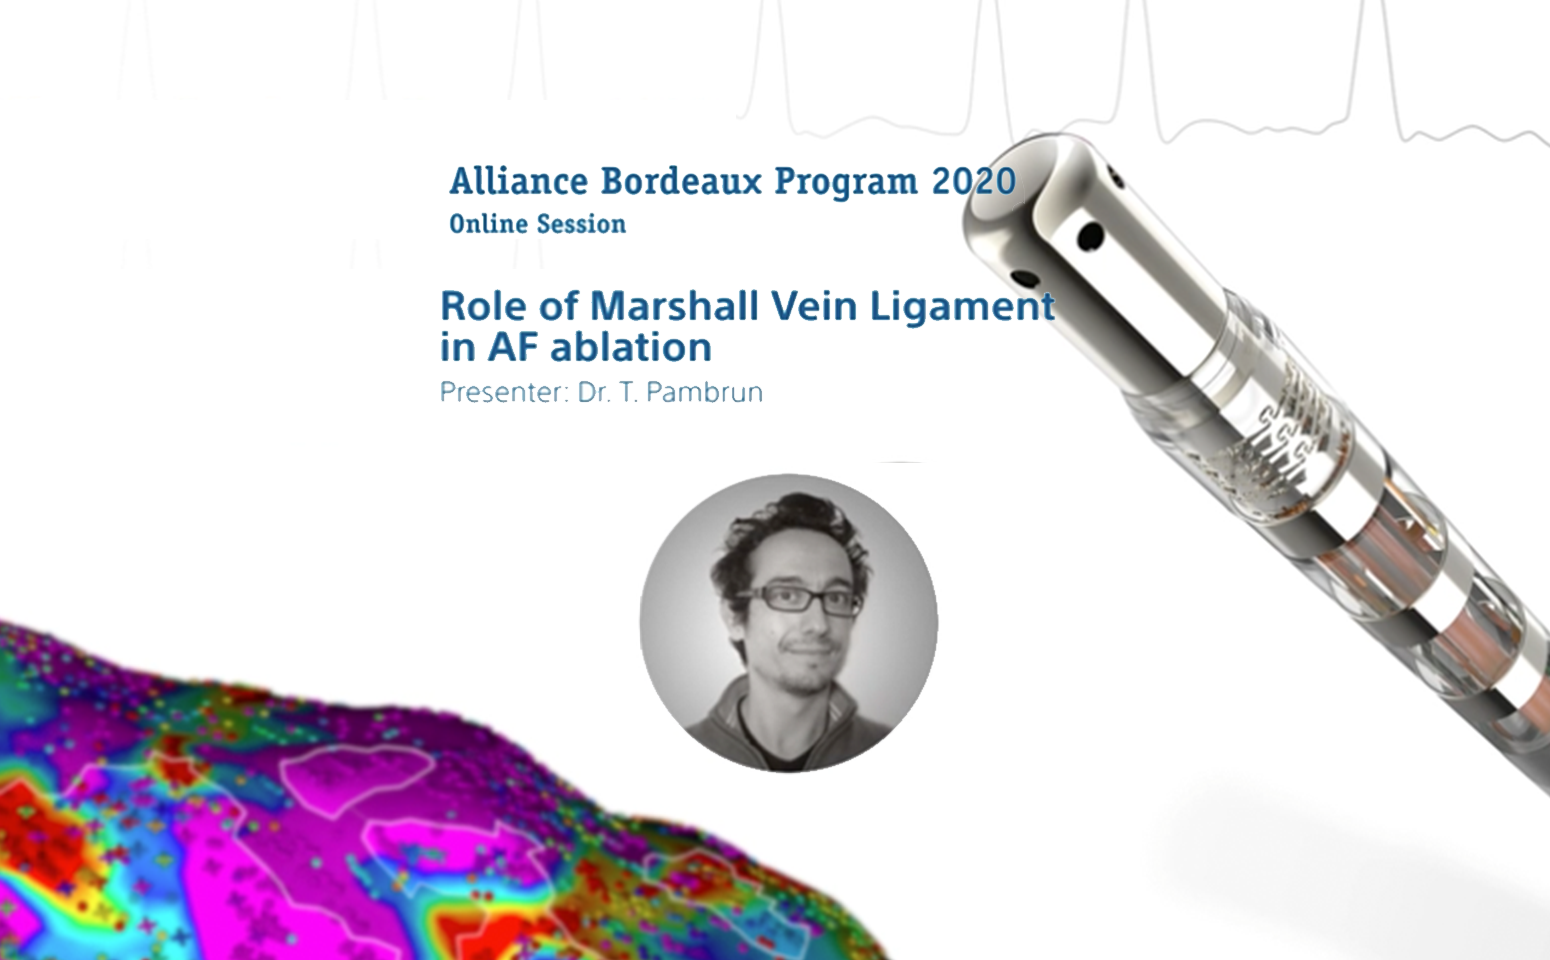 The Role of the Marshall Vein Ligament in AF Ablation